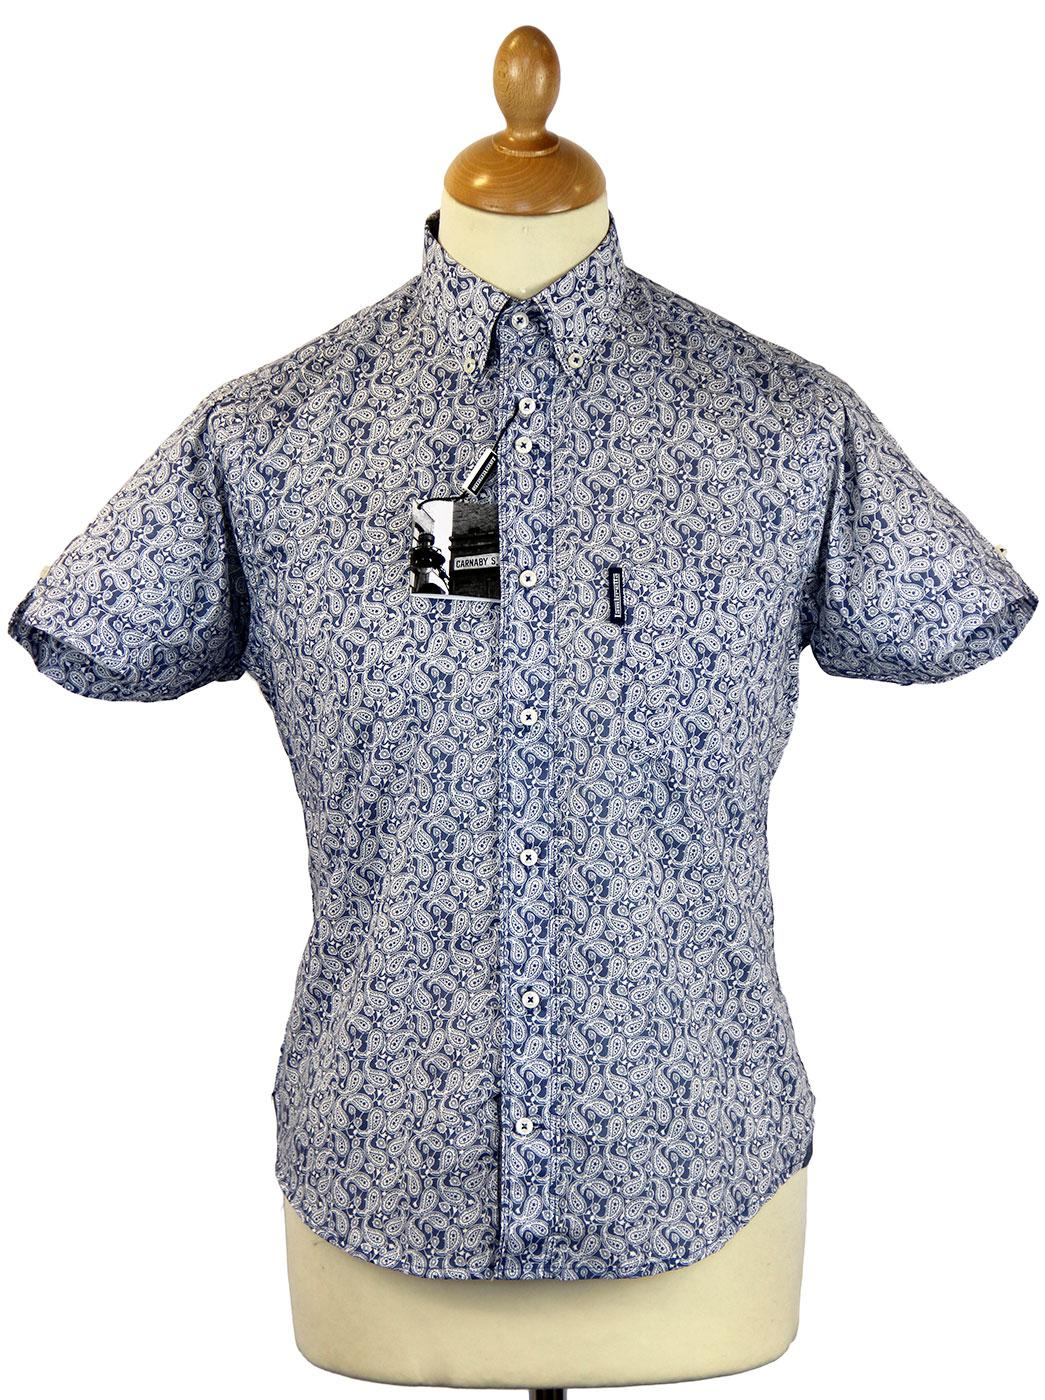 Mono Paisley LAMBRETTA Retro Mod Button Down Shirt